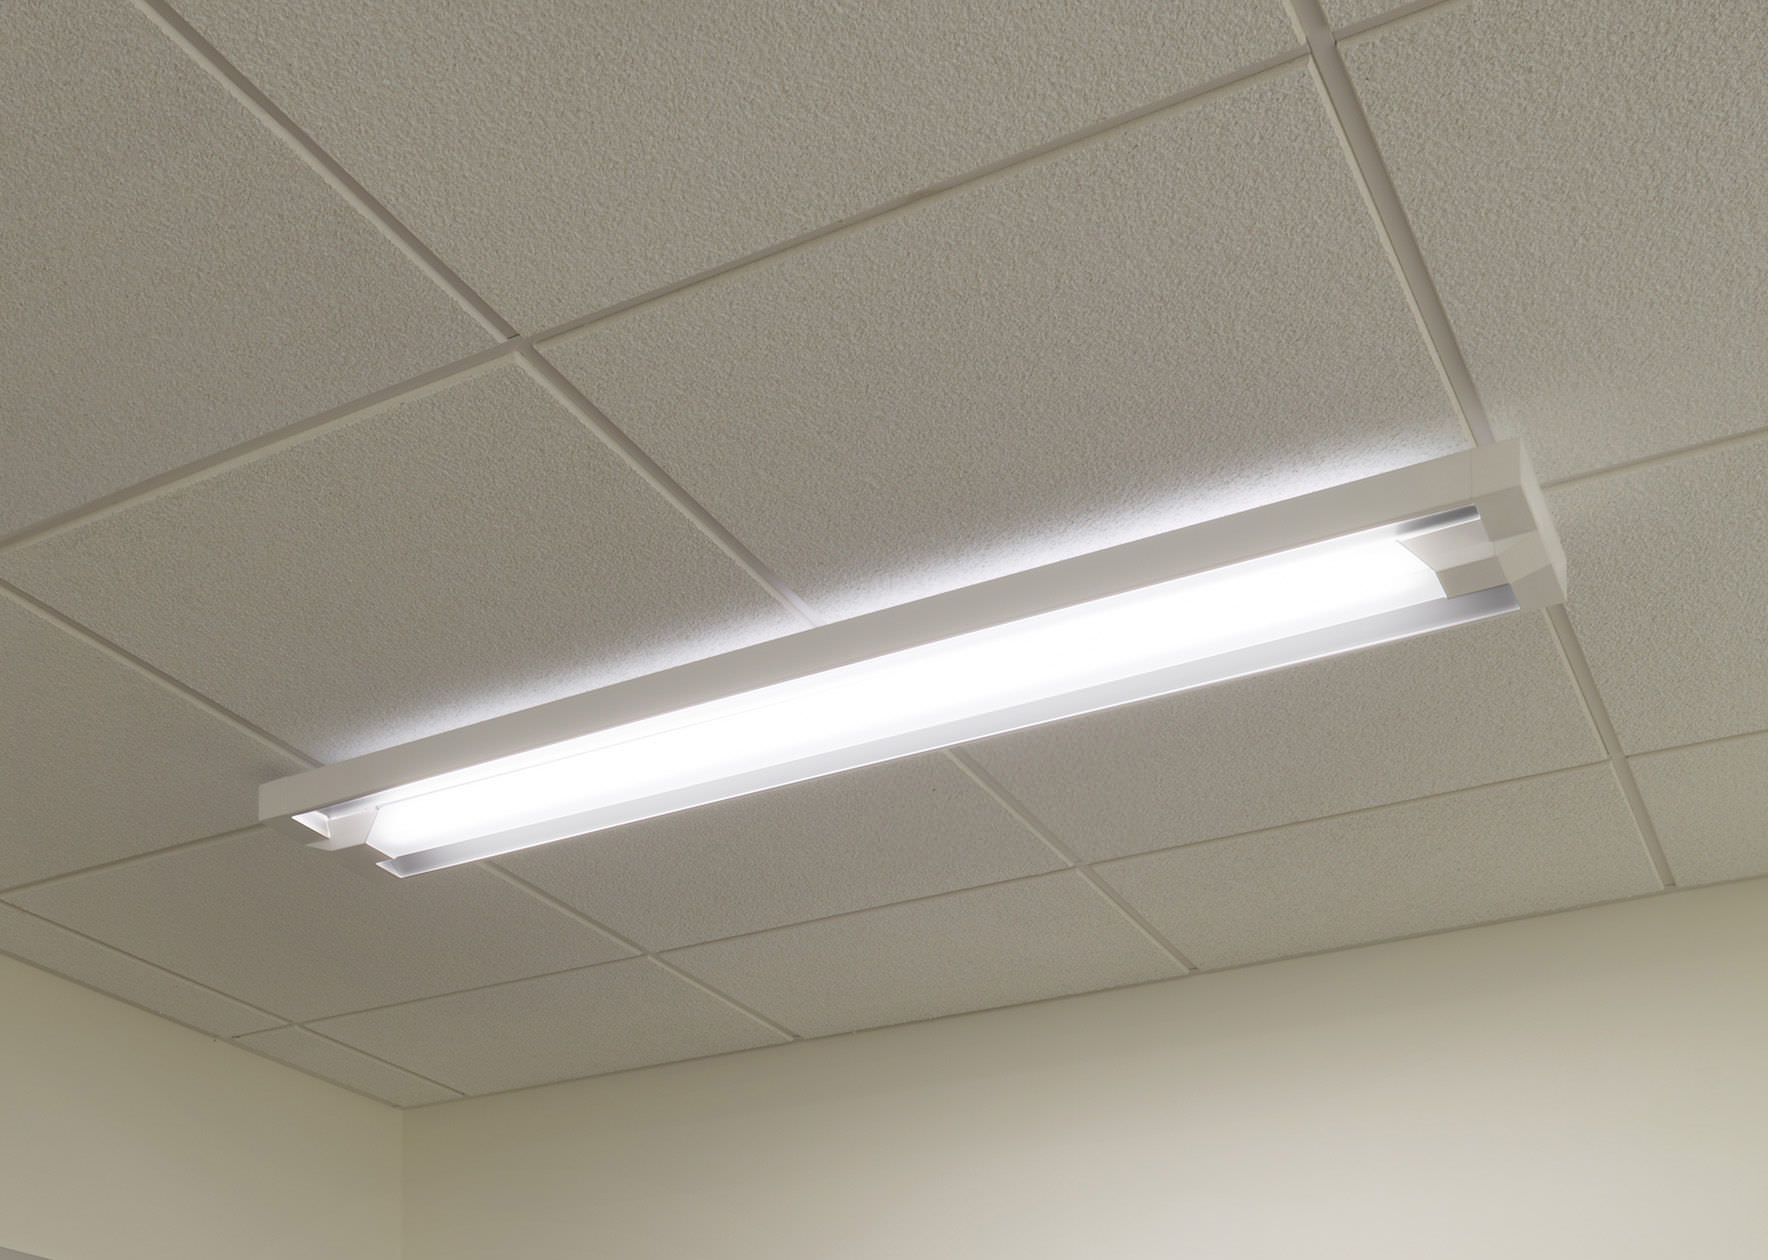 Recessed ceiling light fixture - AERIAL™ - LiteControl - surface-mounted / fluorescent / linear